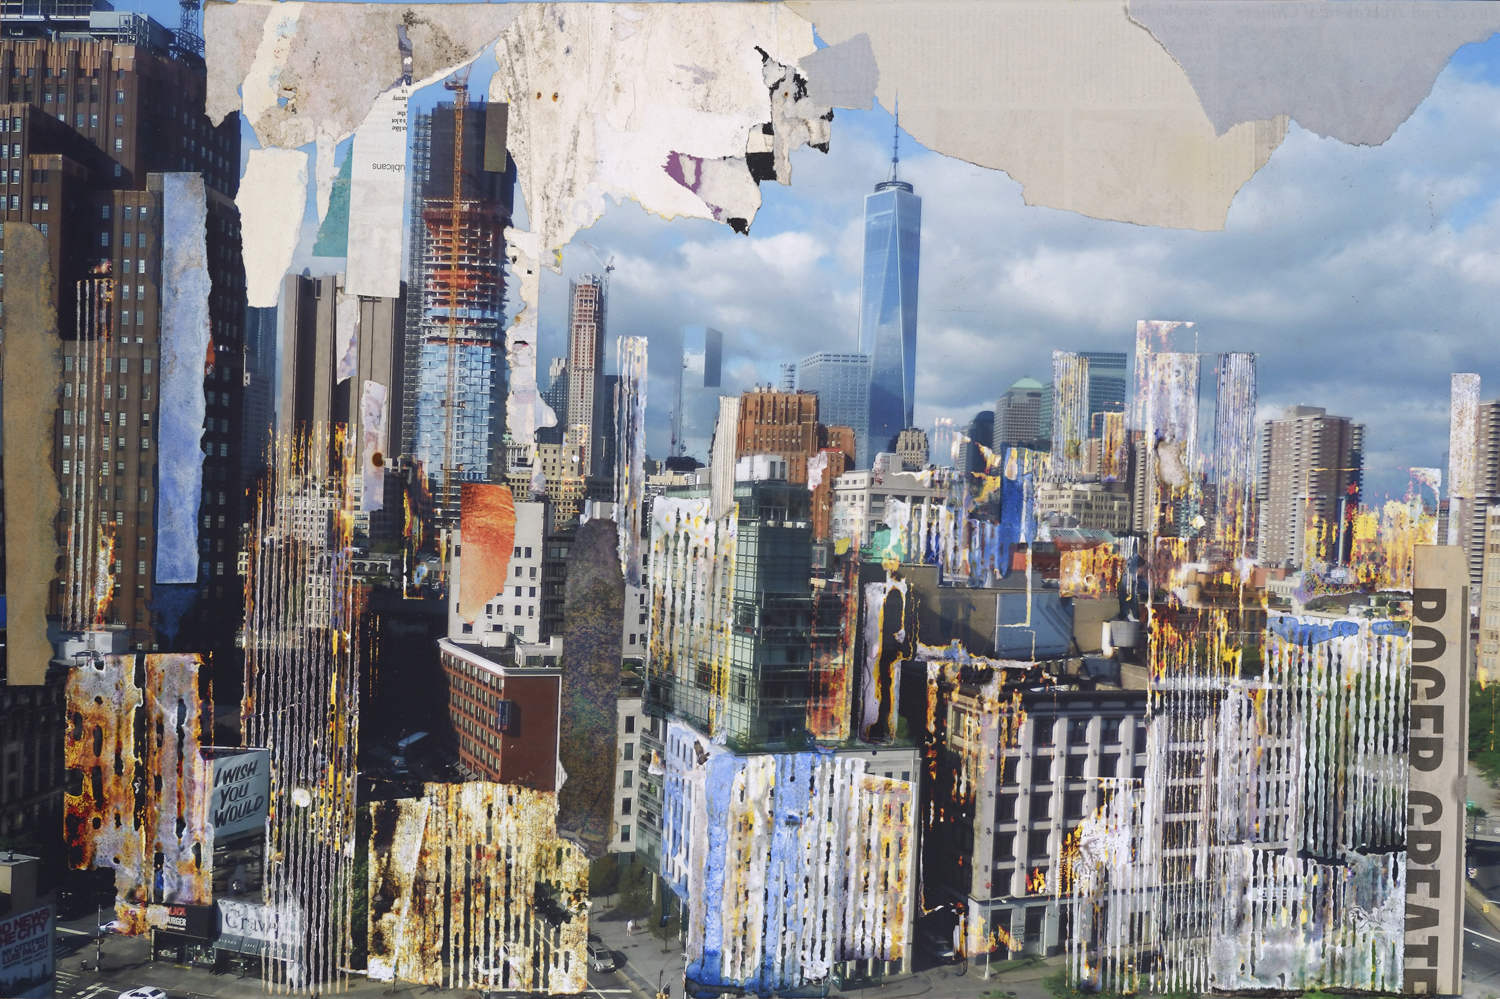 GOTTFRIED SALZMANN, WTC,mixed media on photograph and collage on wood, 19.5 x 29 in, 2017